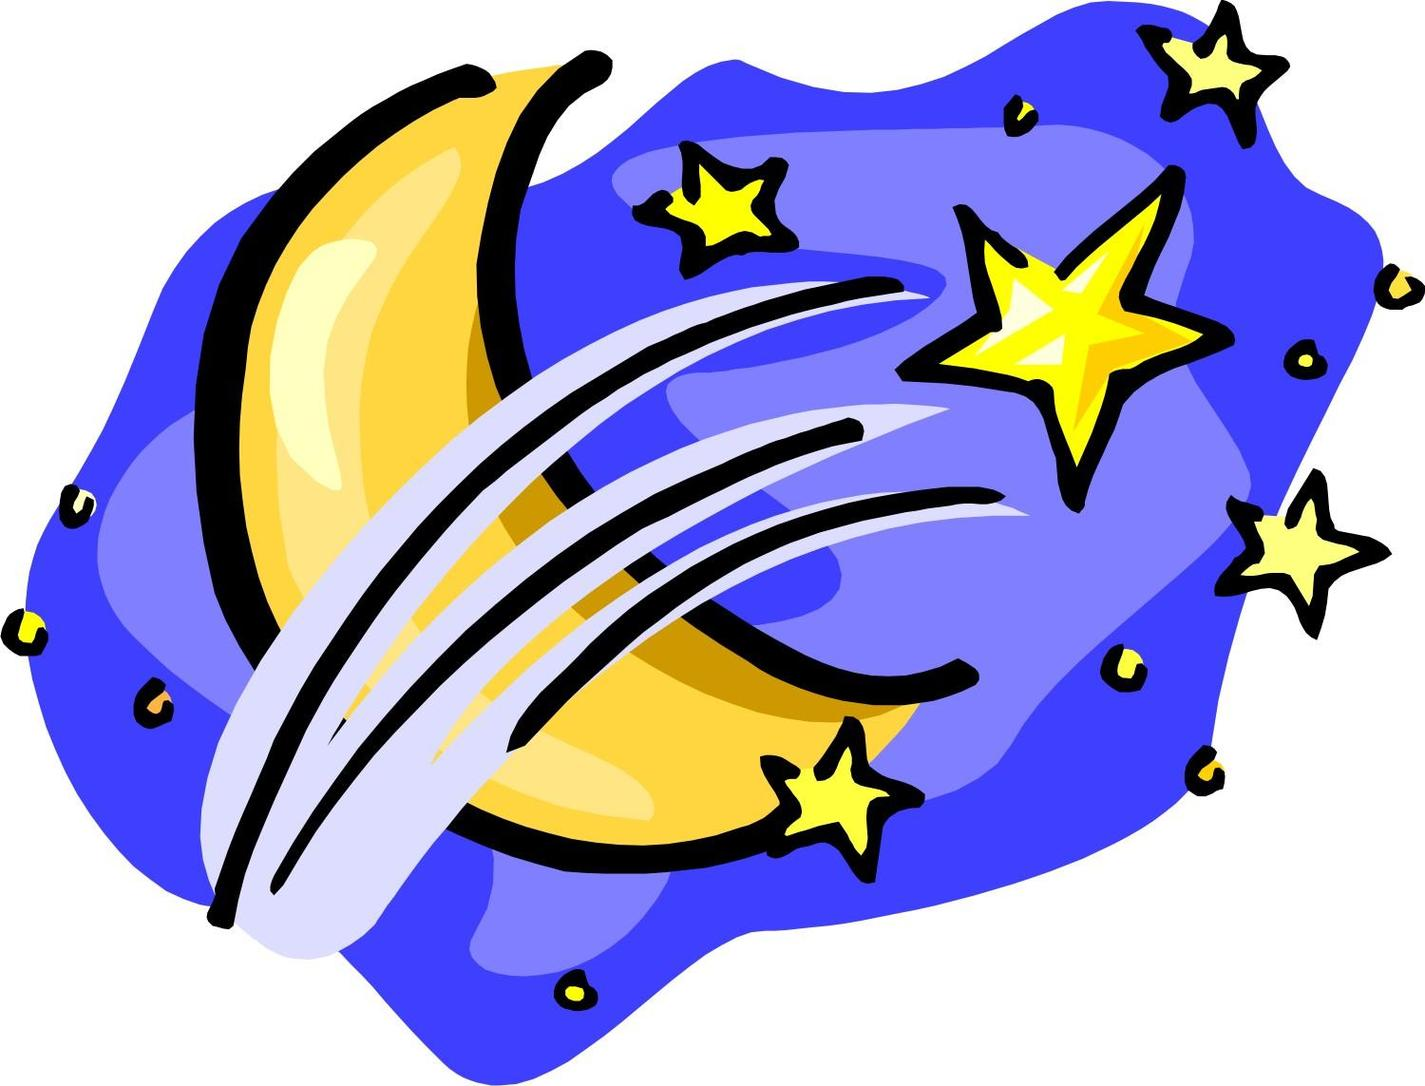 moon and stars clipart free - Clipground